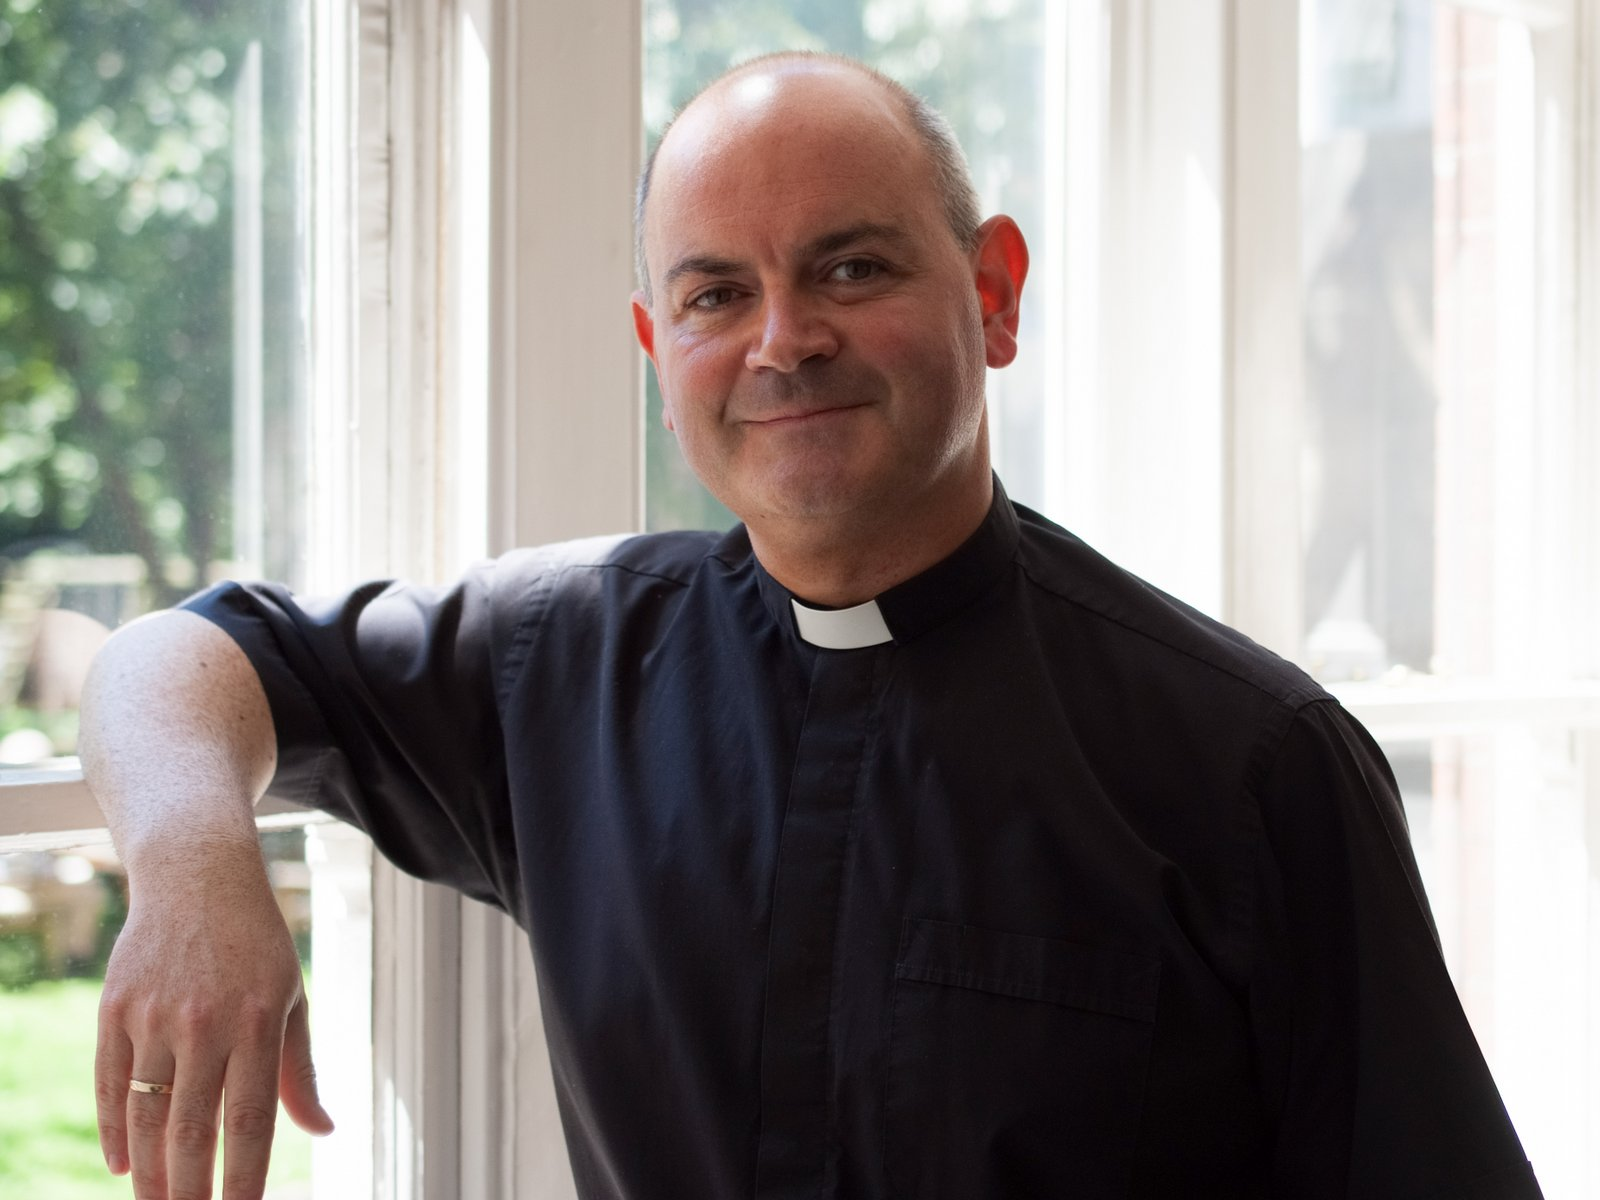 Photo of the Reverend Canon Mark Oatley